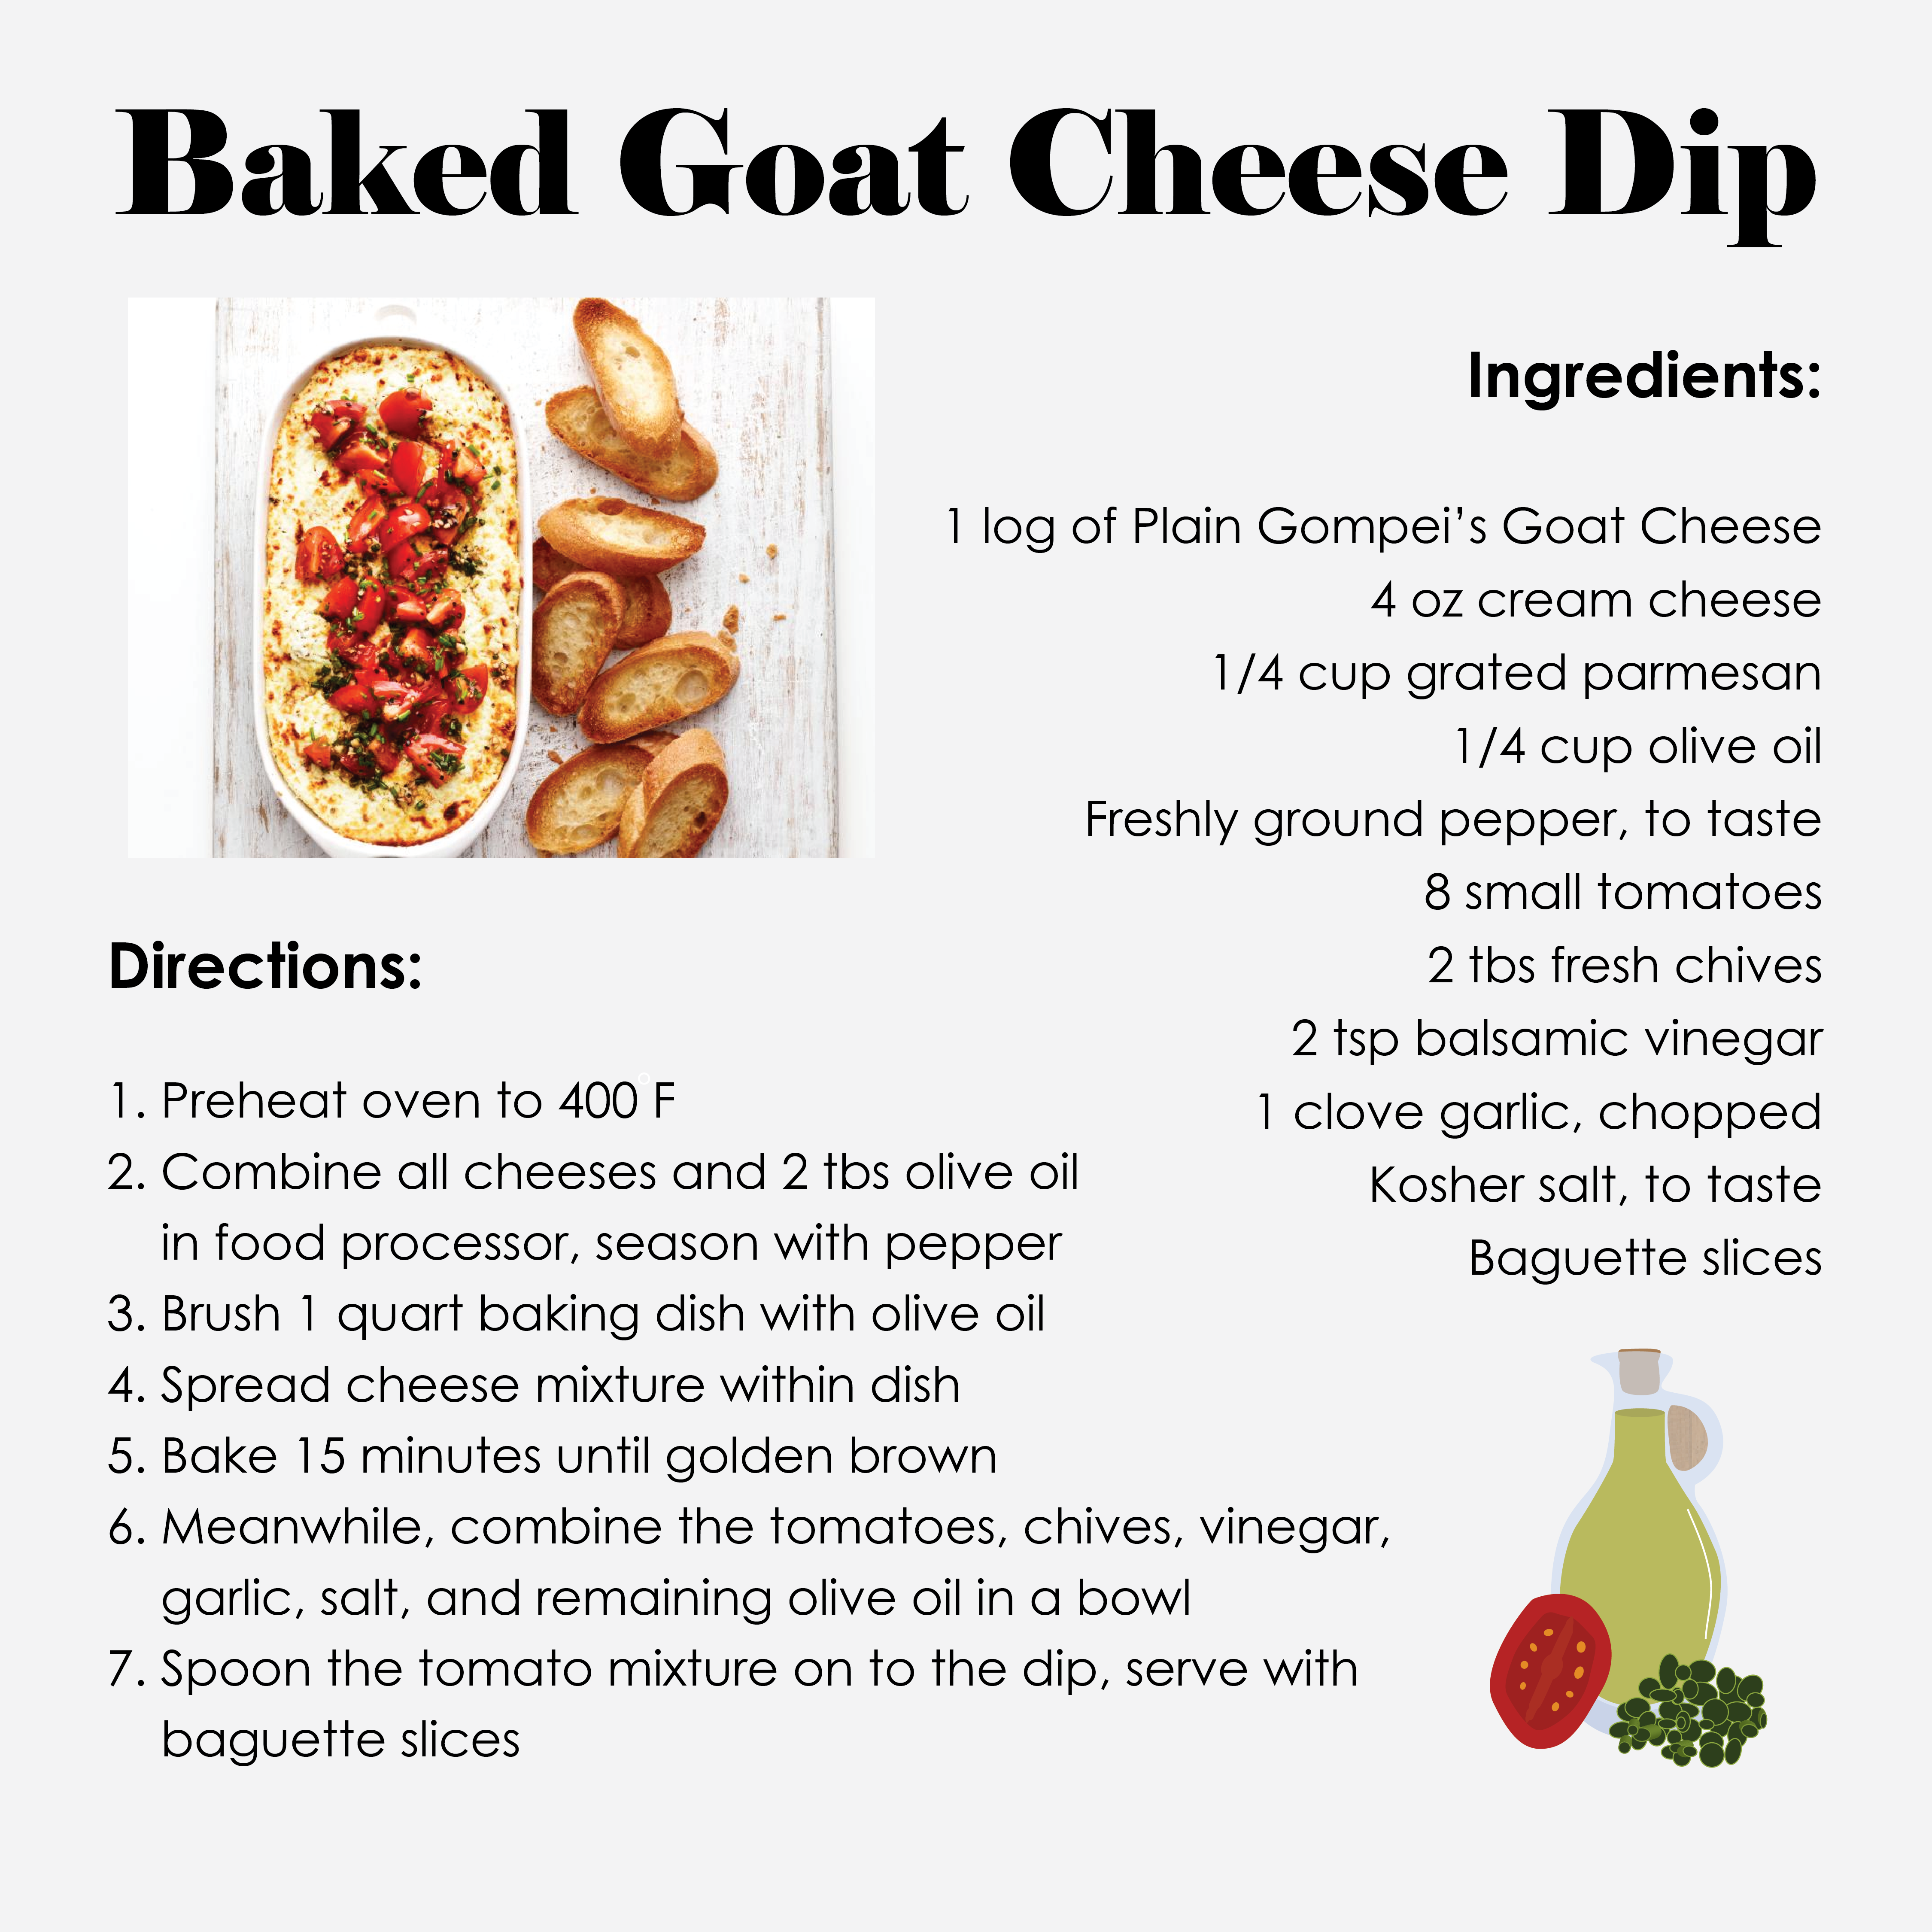 A Recipe for Baked Goat Cheese Dip